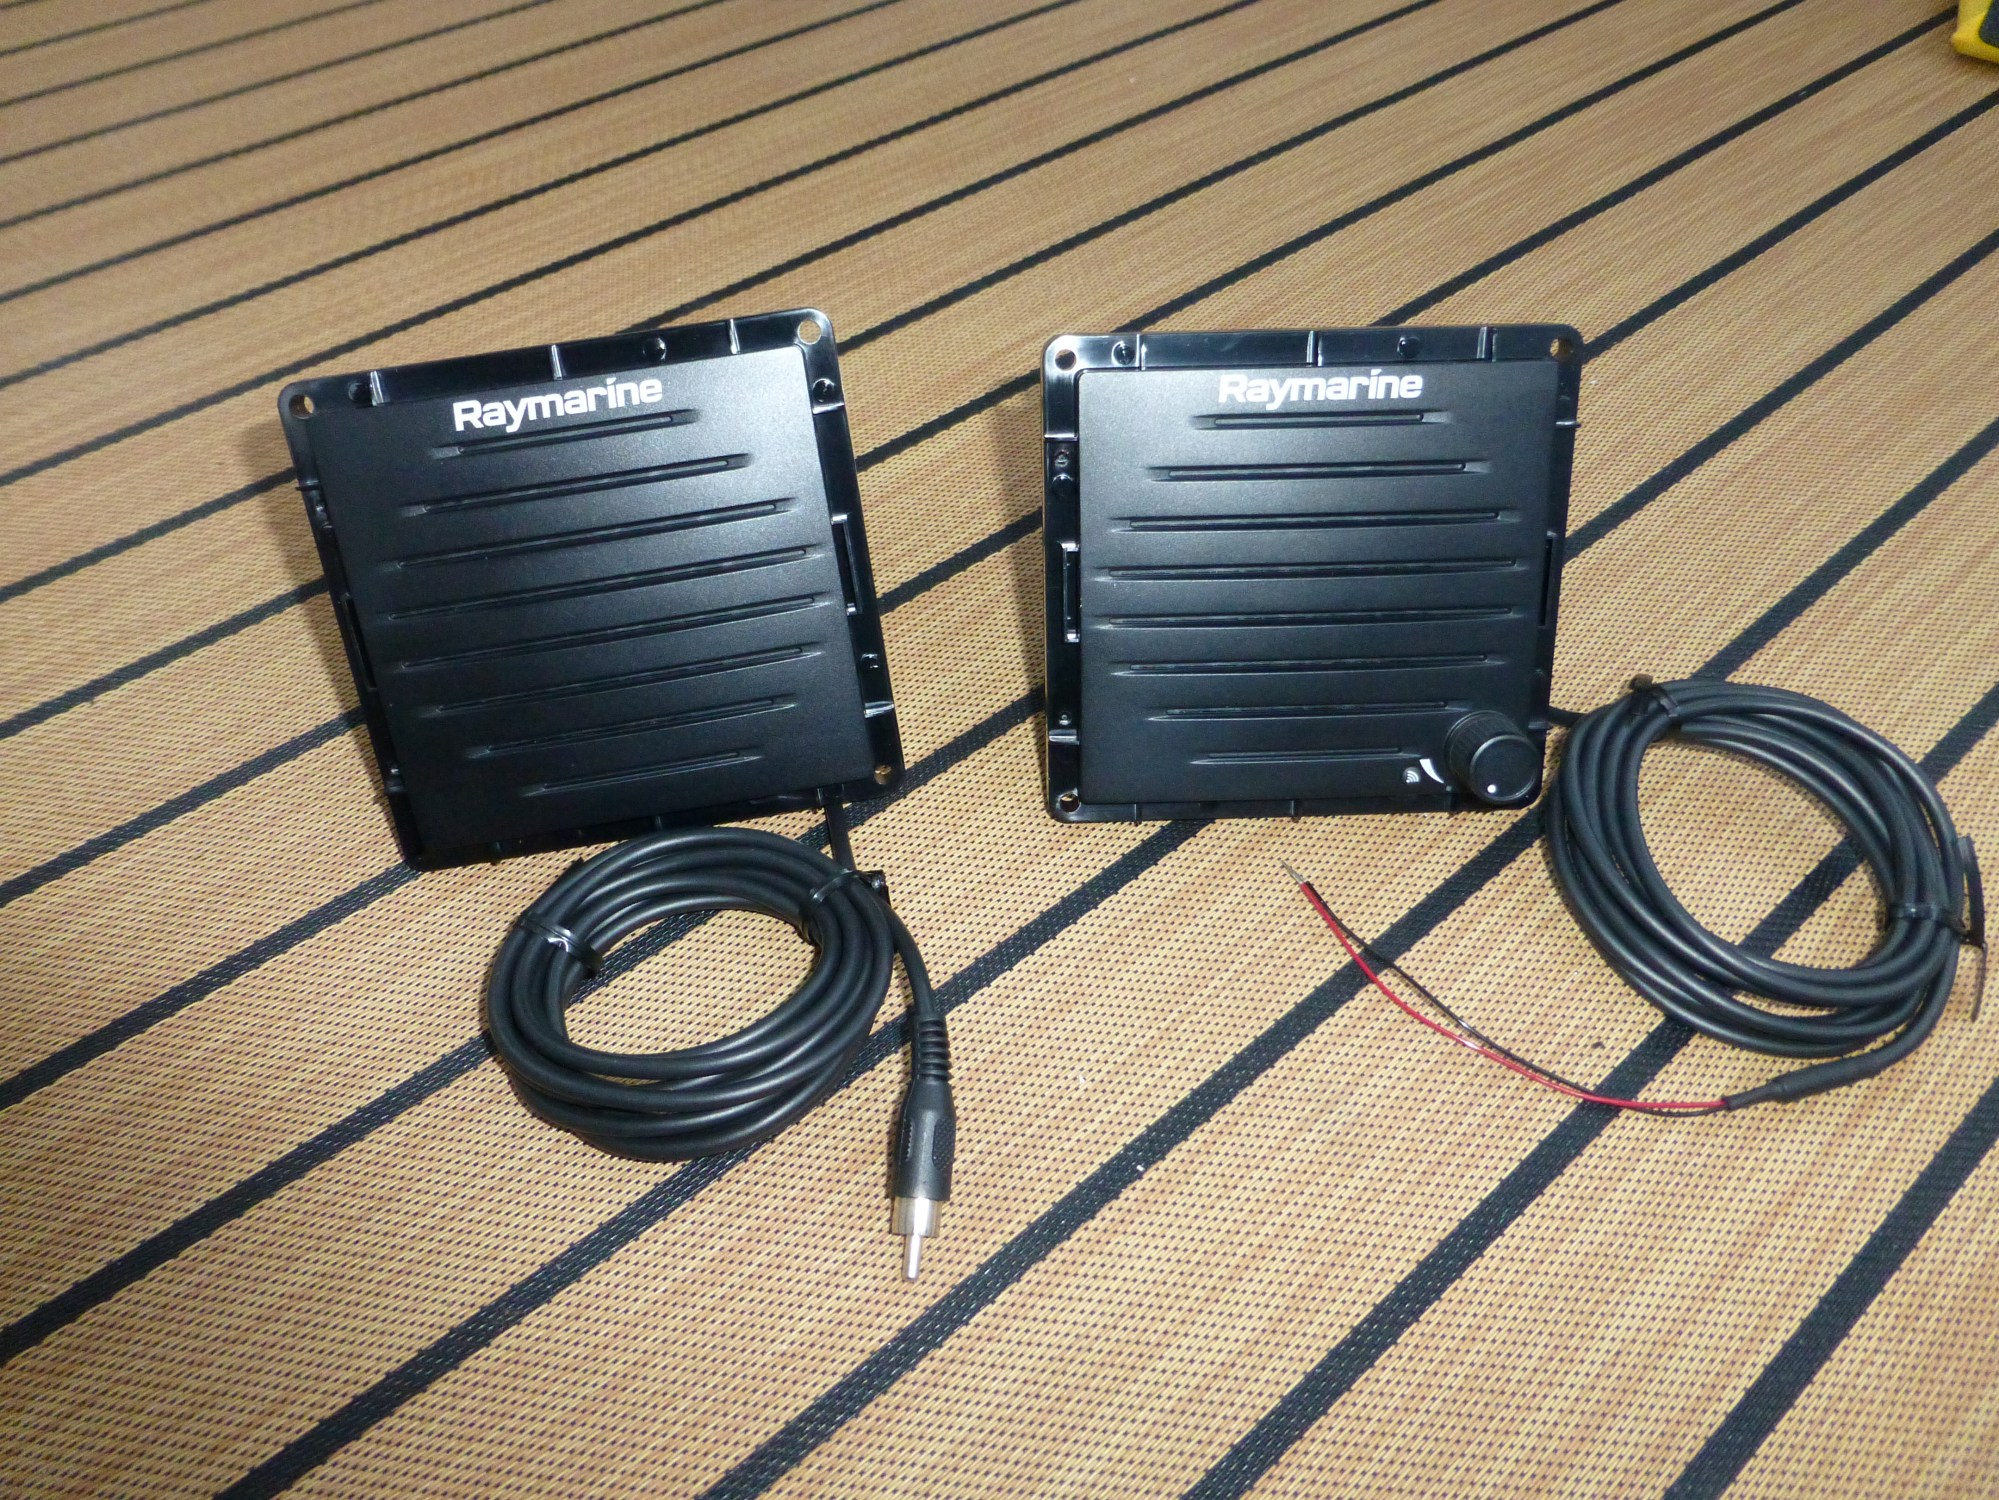 hight resolution of a passive speaker on the left with its rca audio input and the wireless active speaker on the right with its 12v input